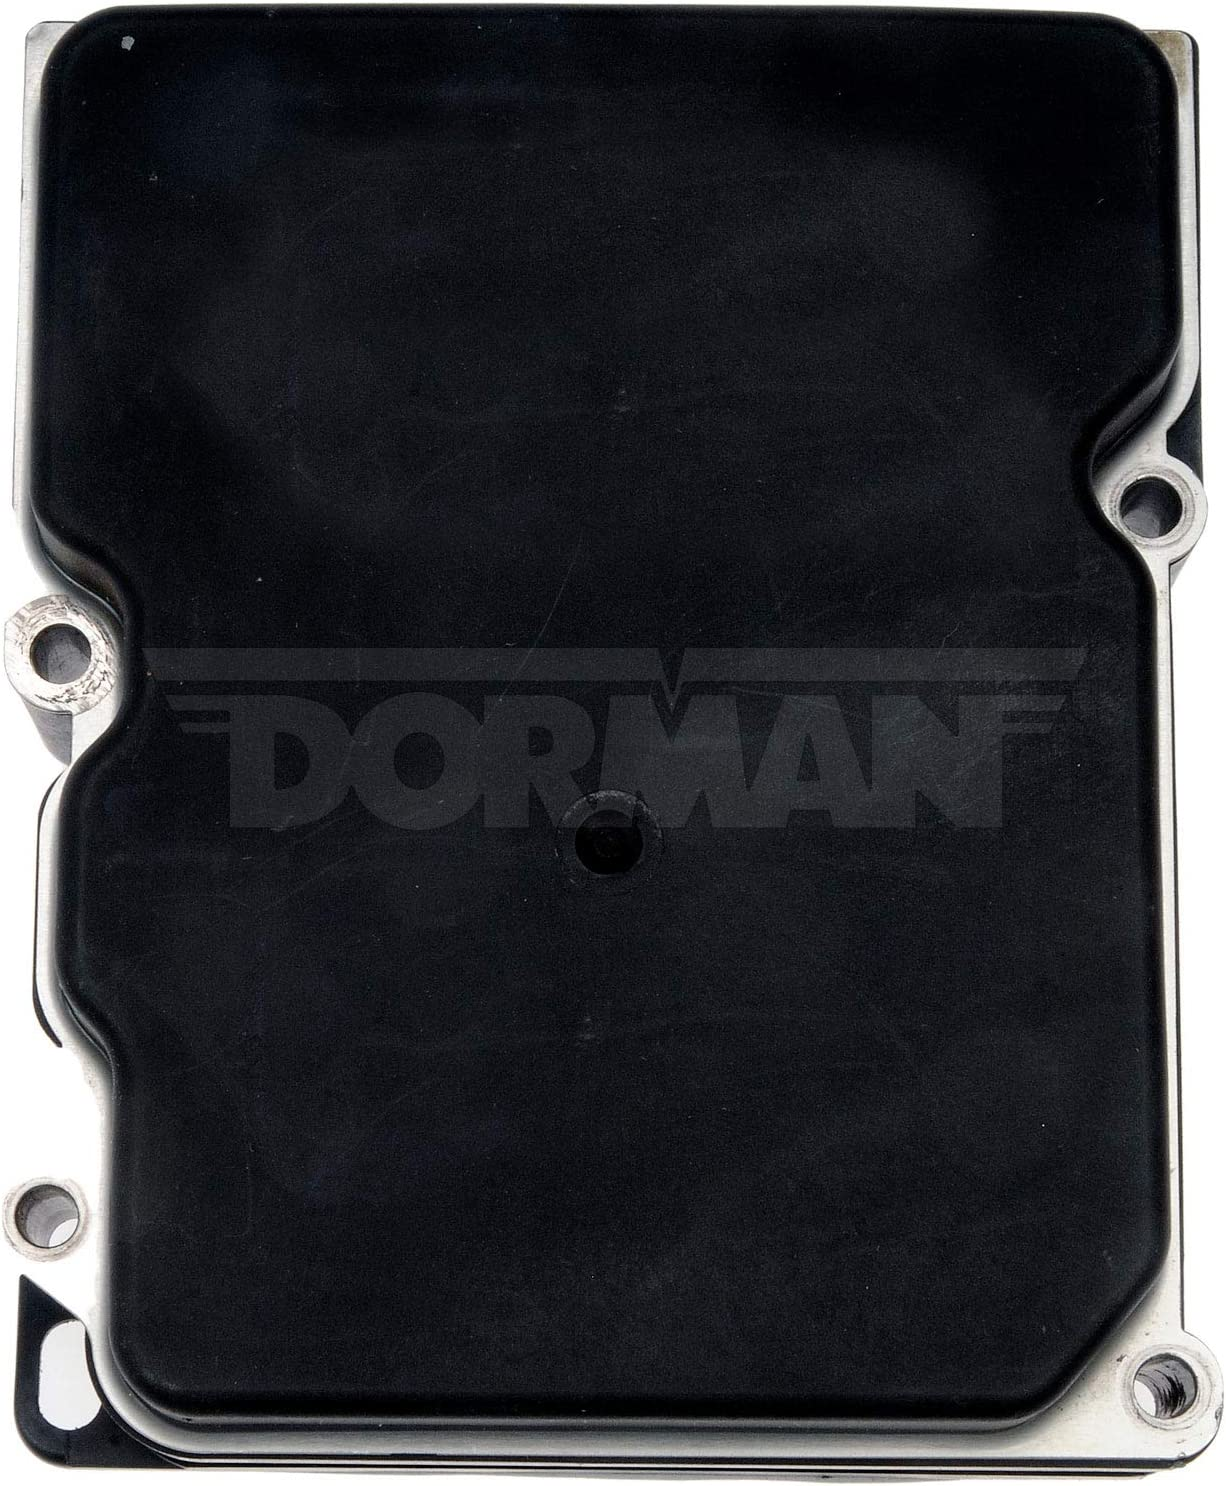 Dorman OE Solutions 599-775 Remanufactured ABS Control Module